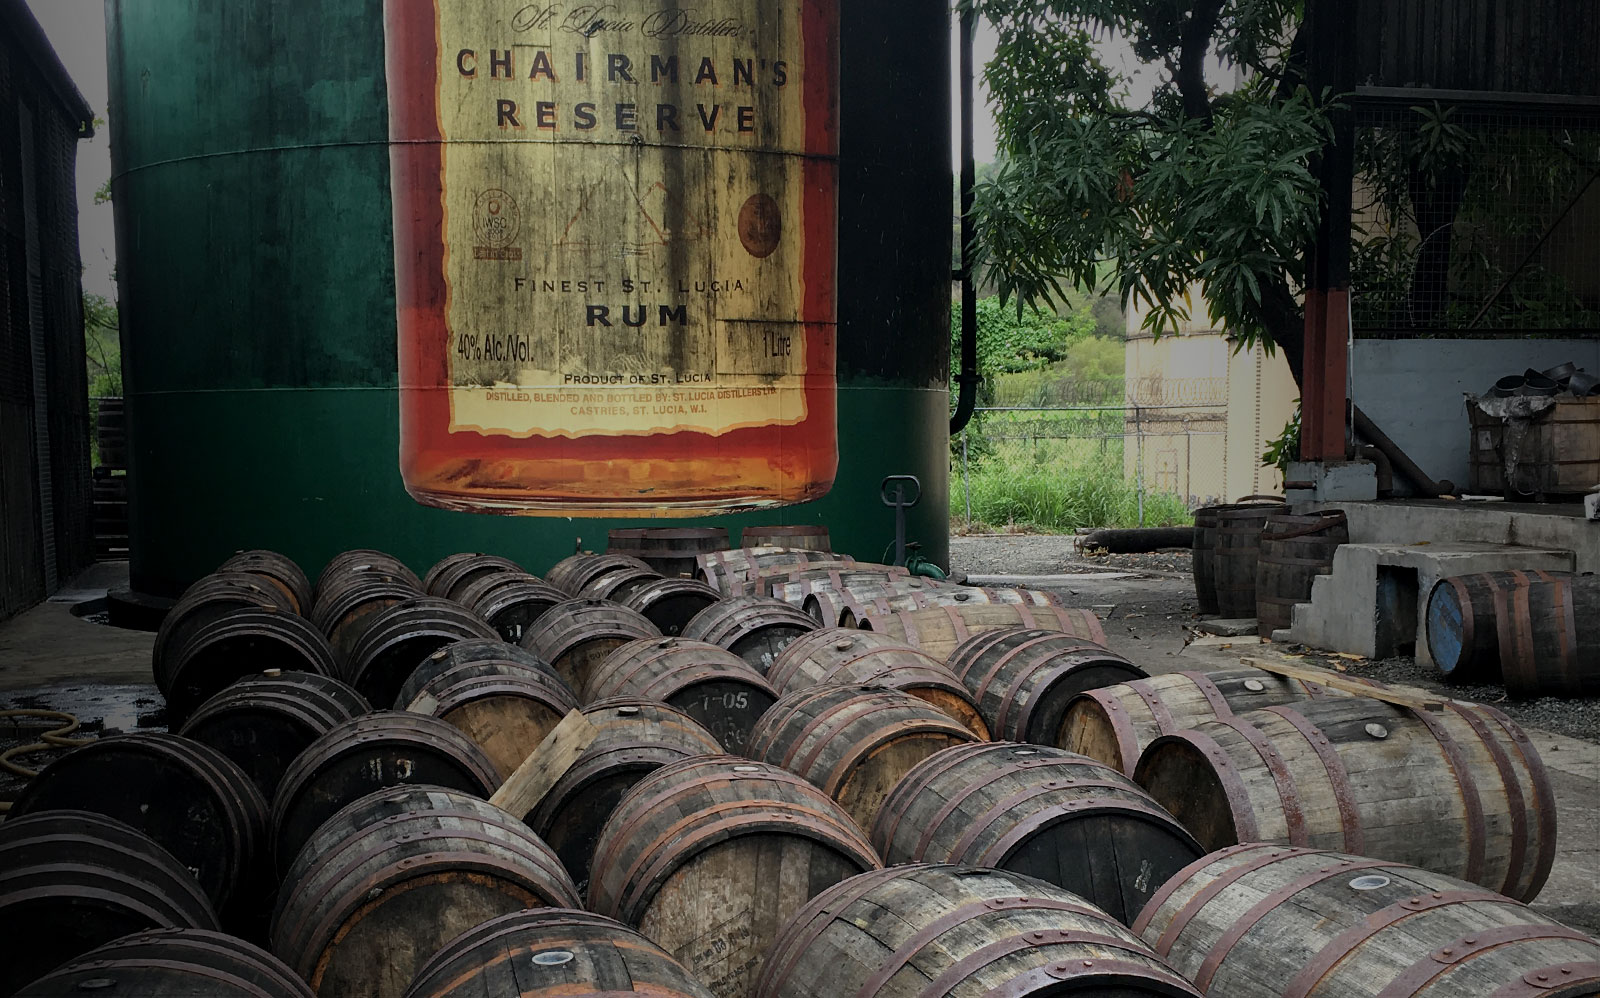 Chairmans Reserve - exclusively from Big Island Wholesalers